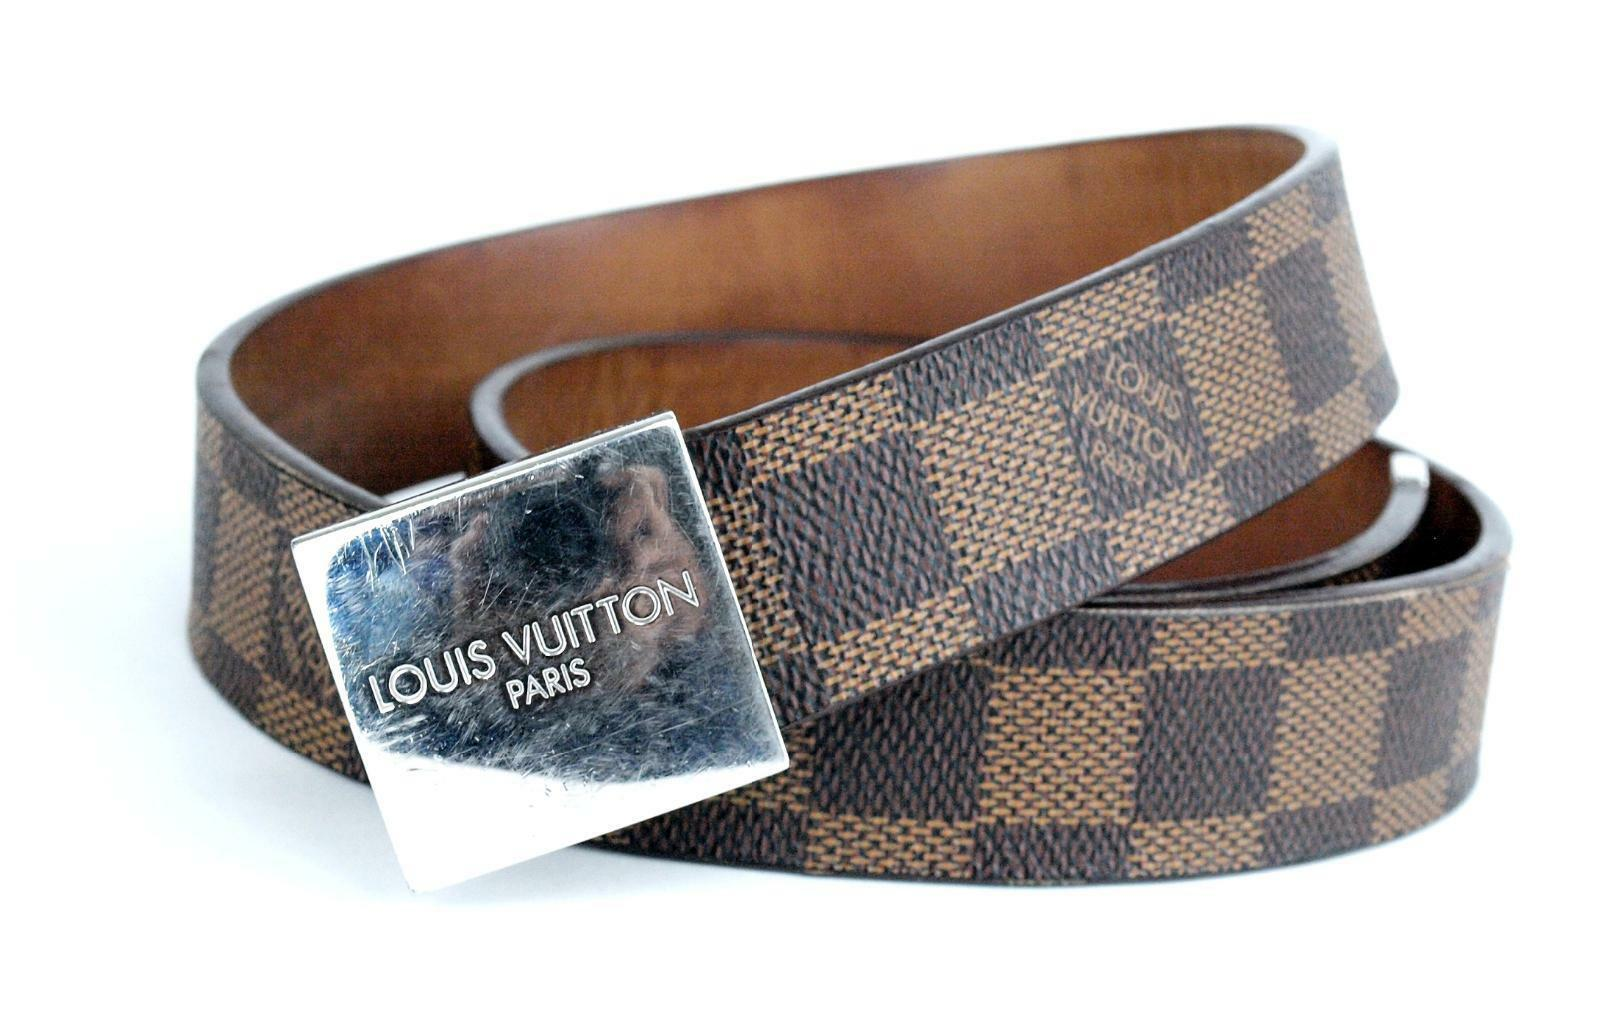 Primary image for Louis Vuitton Paris Damier Brown Canvas Leather Waist Belt Size 81 CM Spain Used